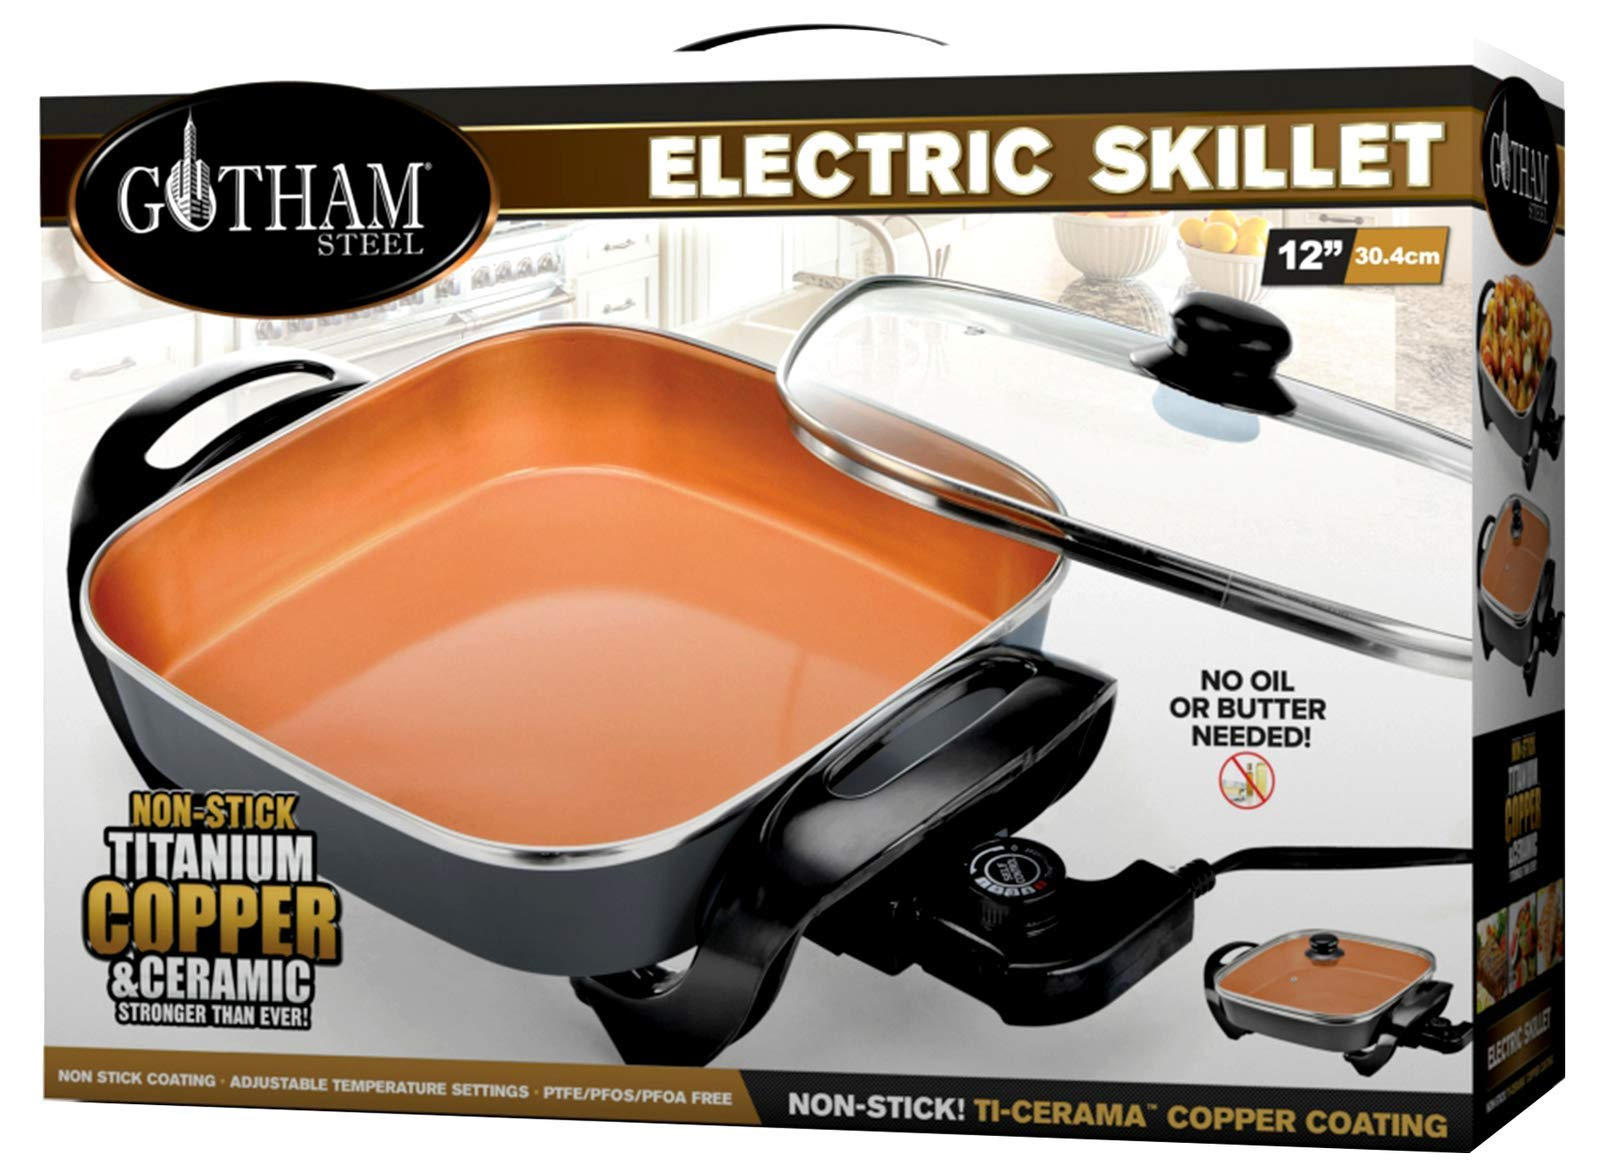 Gotham Steel 2172 Electric Skillet with Nonstick Titanium Copper & Ceramic Coating Immersible with Tempered Glass Lid and Multi Temperature Settings 12 x 12 Inch, Large Brown